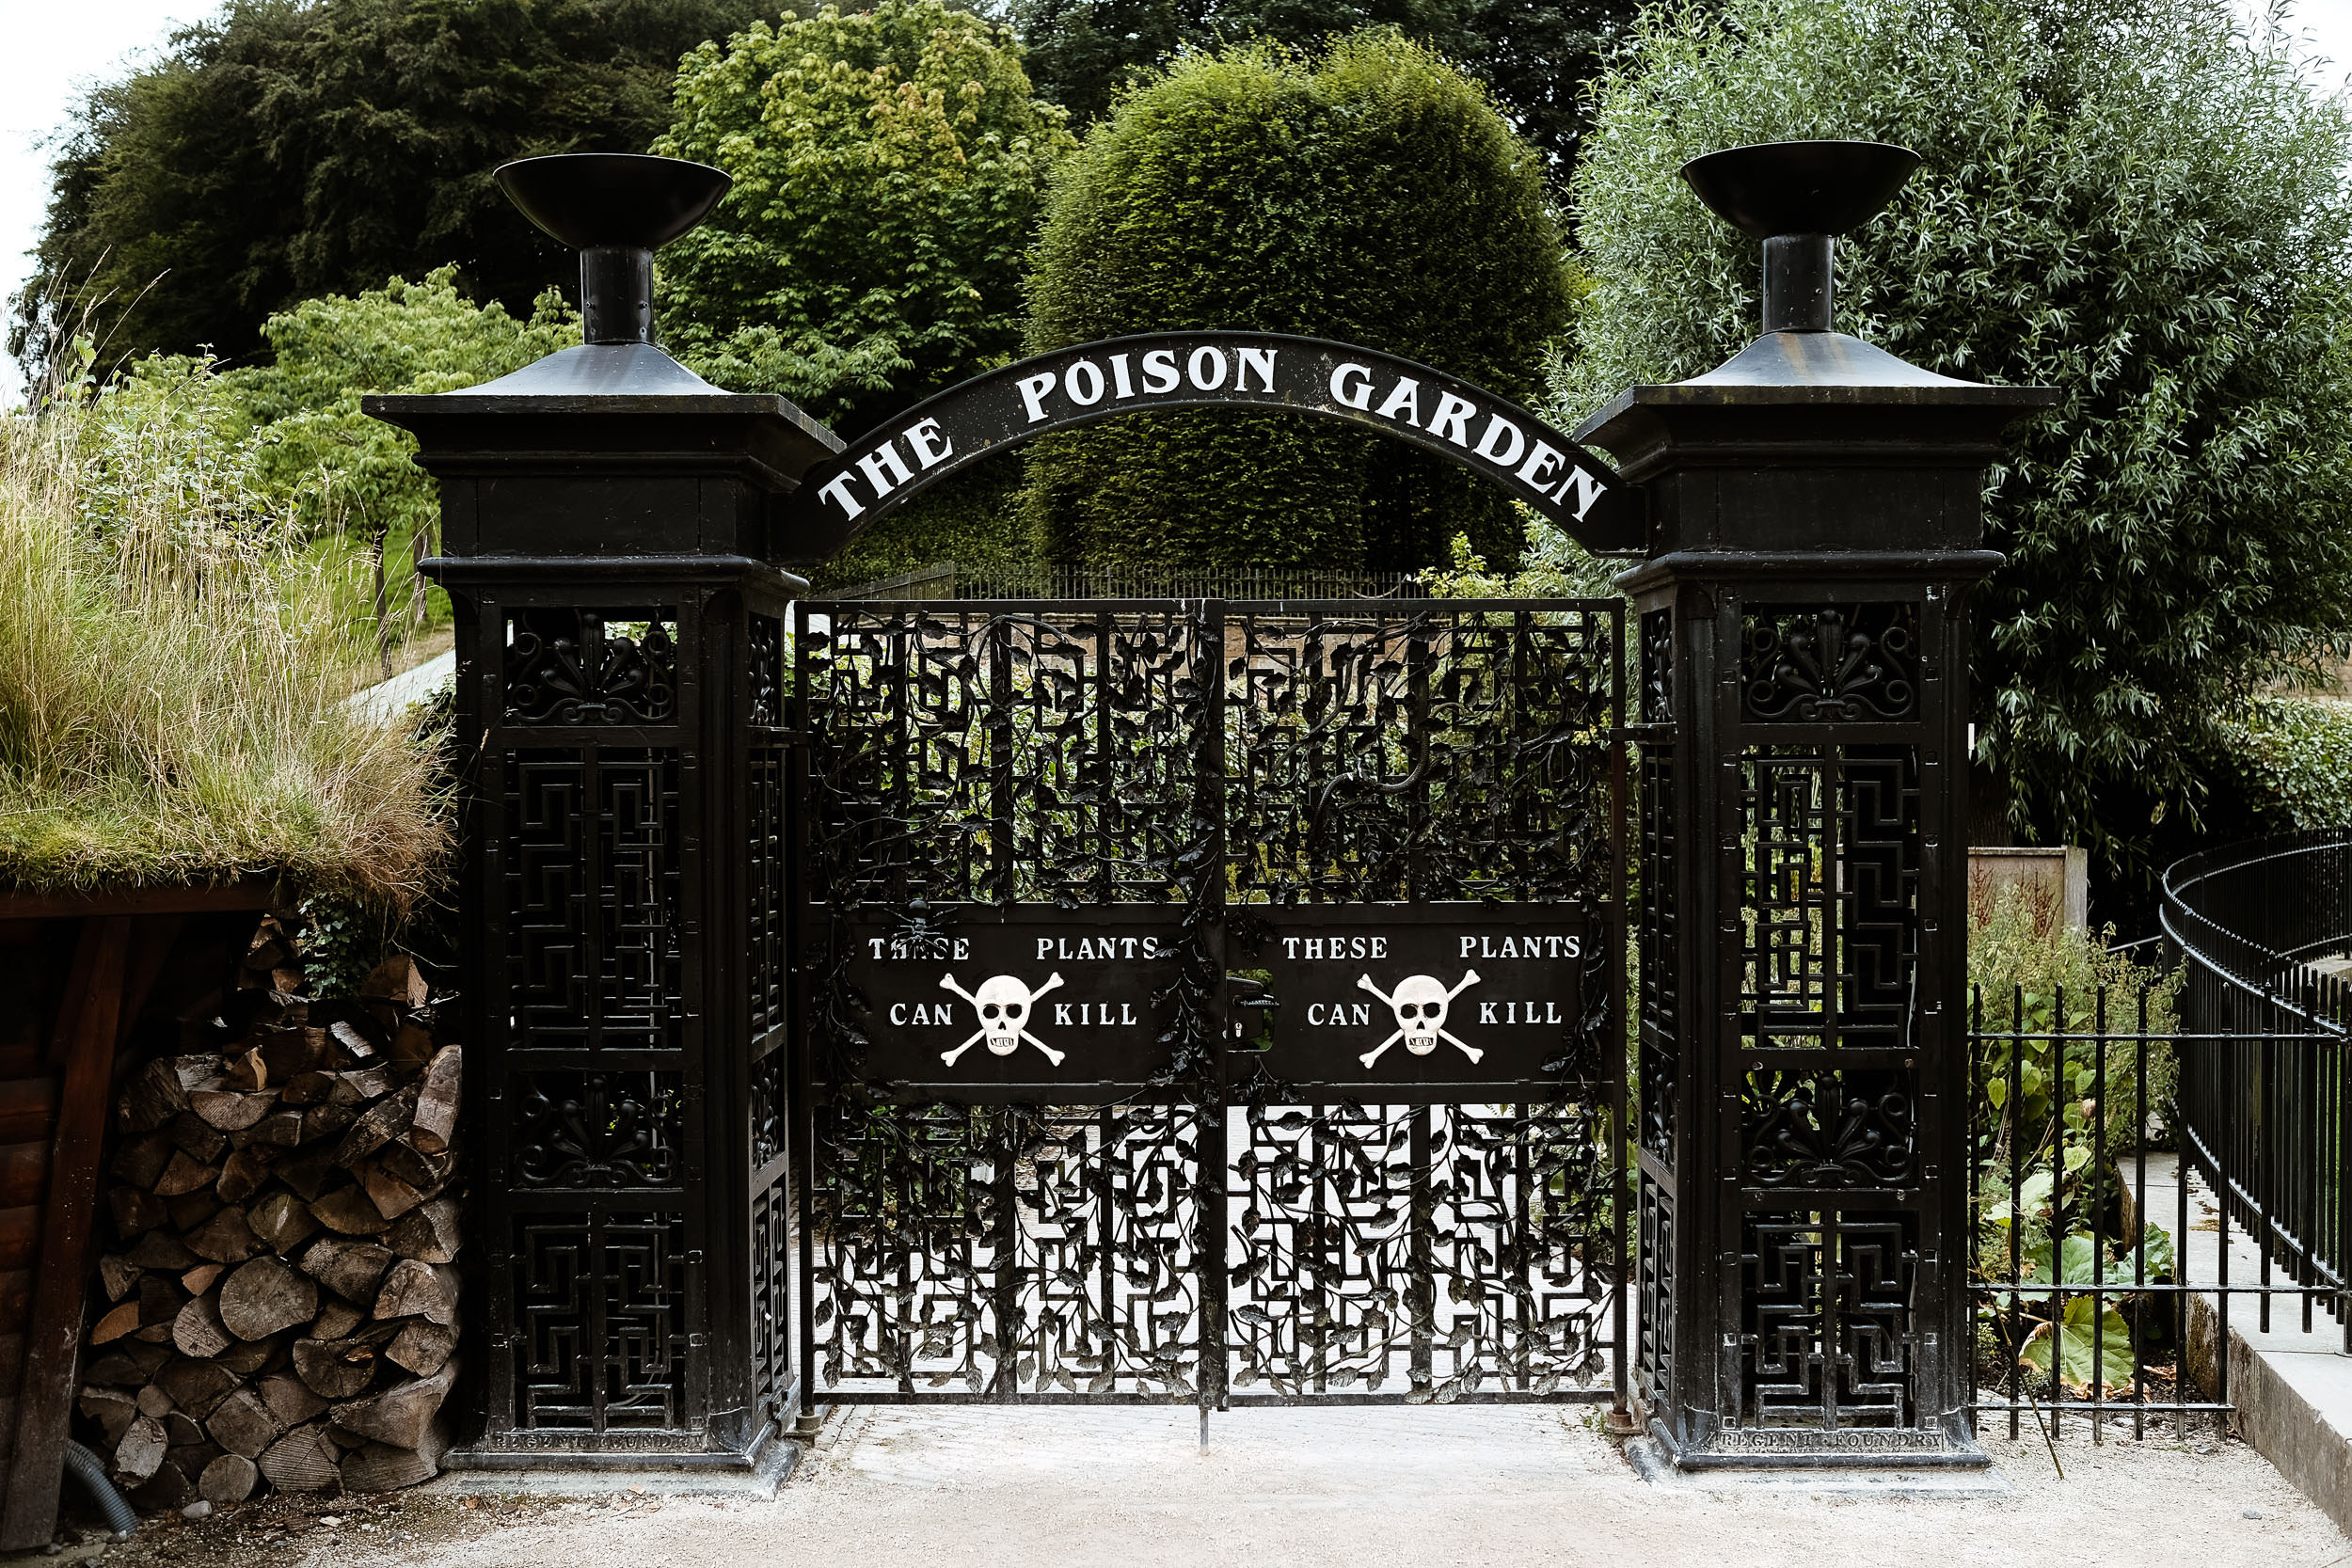 Poison garden gates at the Alnwick Garden